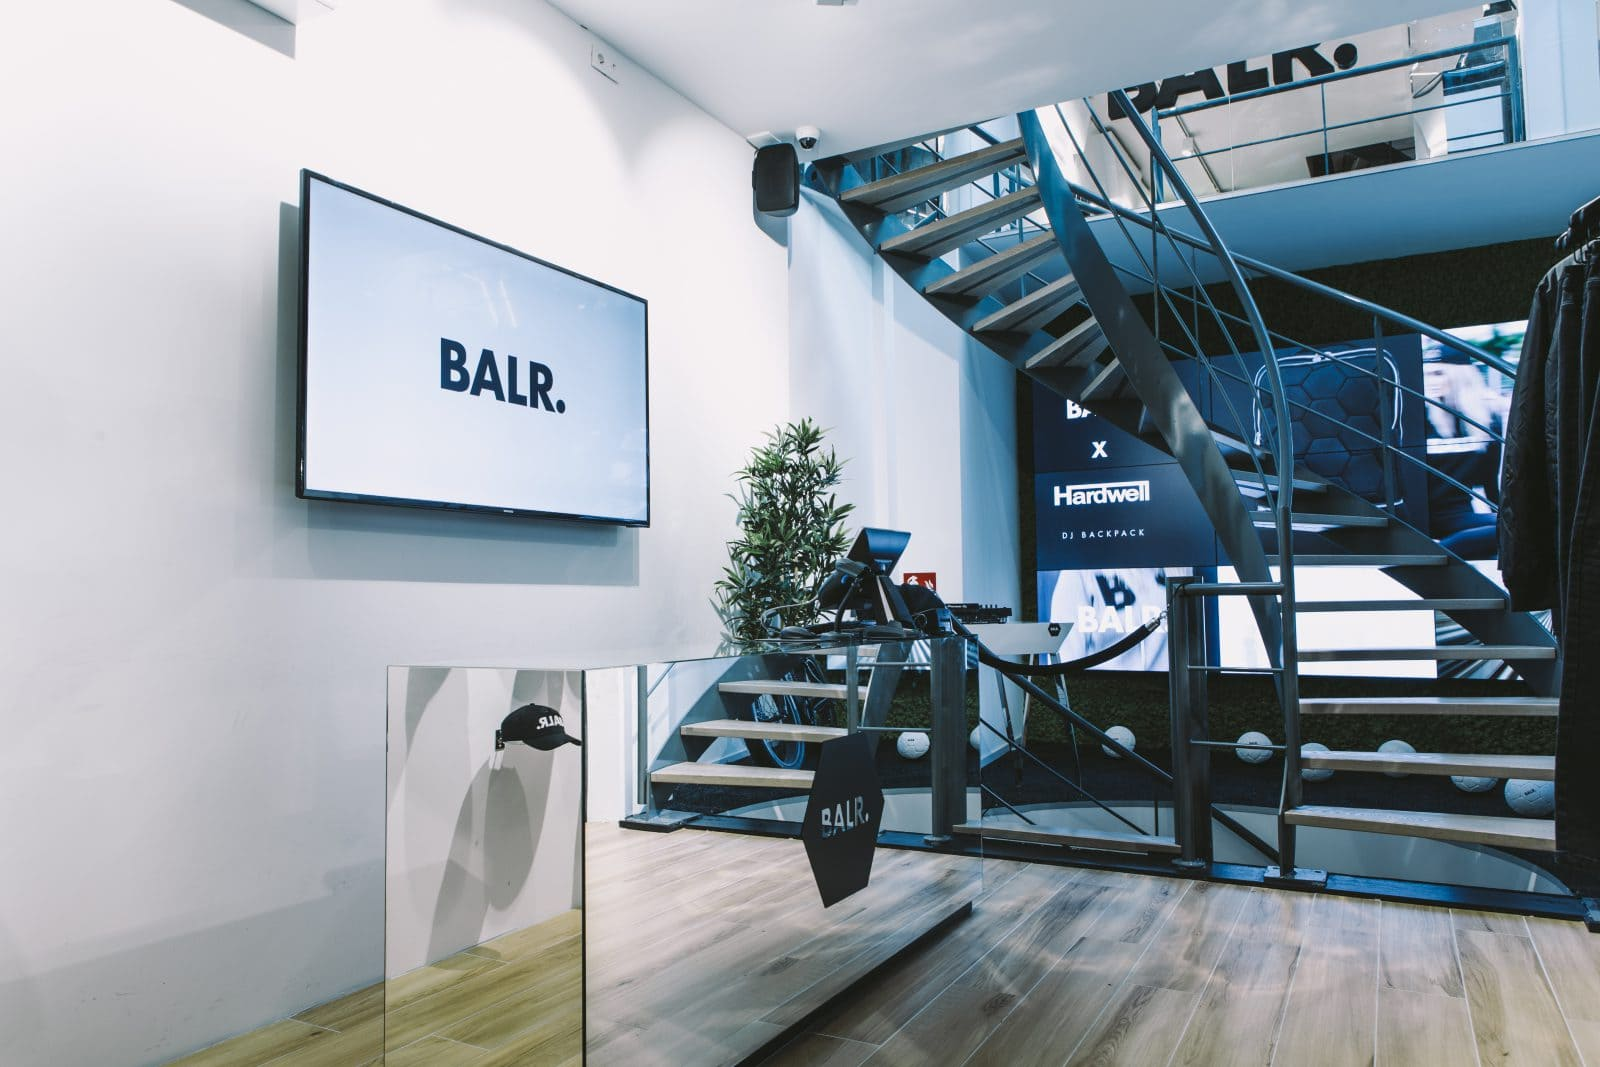 First Impression x Digital brand experience BALR.